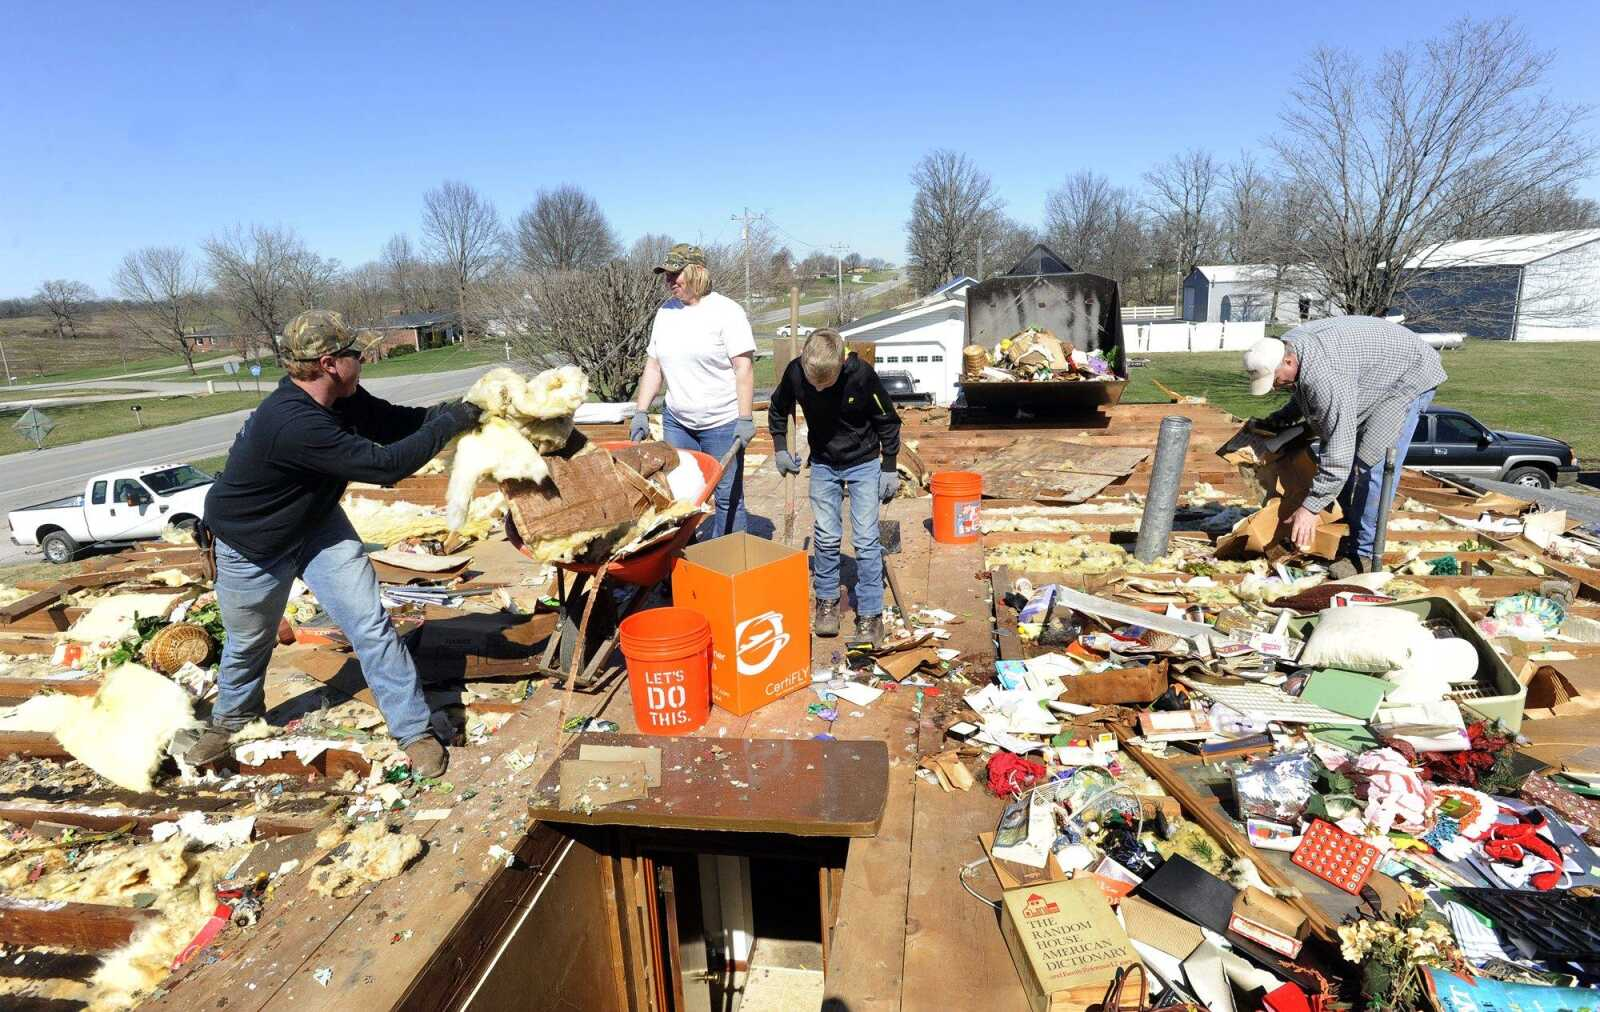 See the damage from a deadly storm in Perryville, Mo